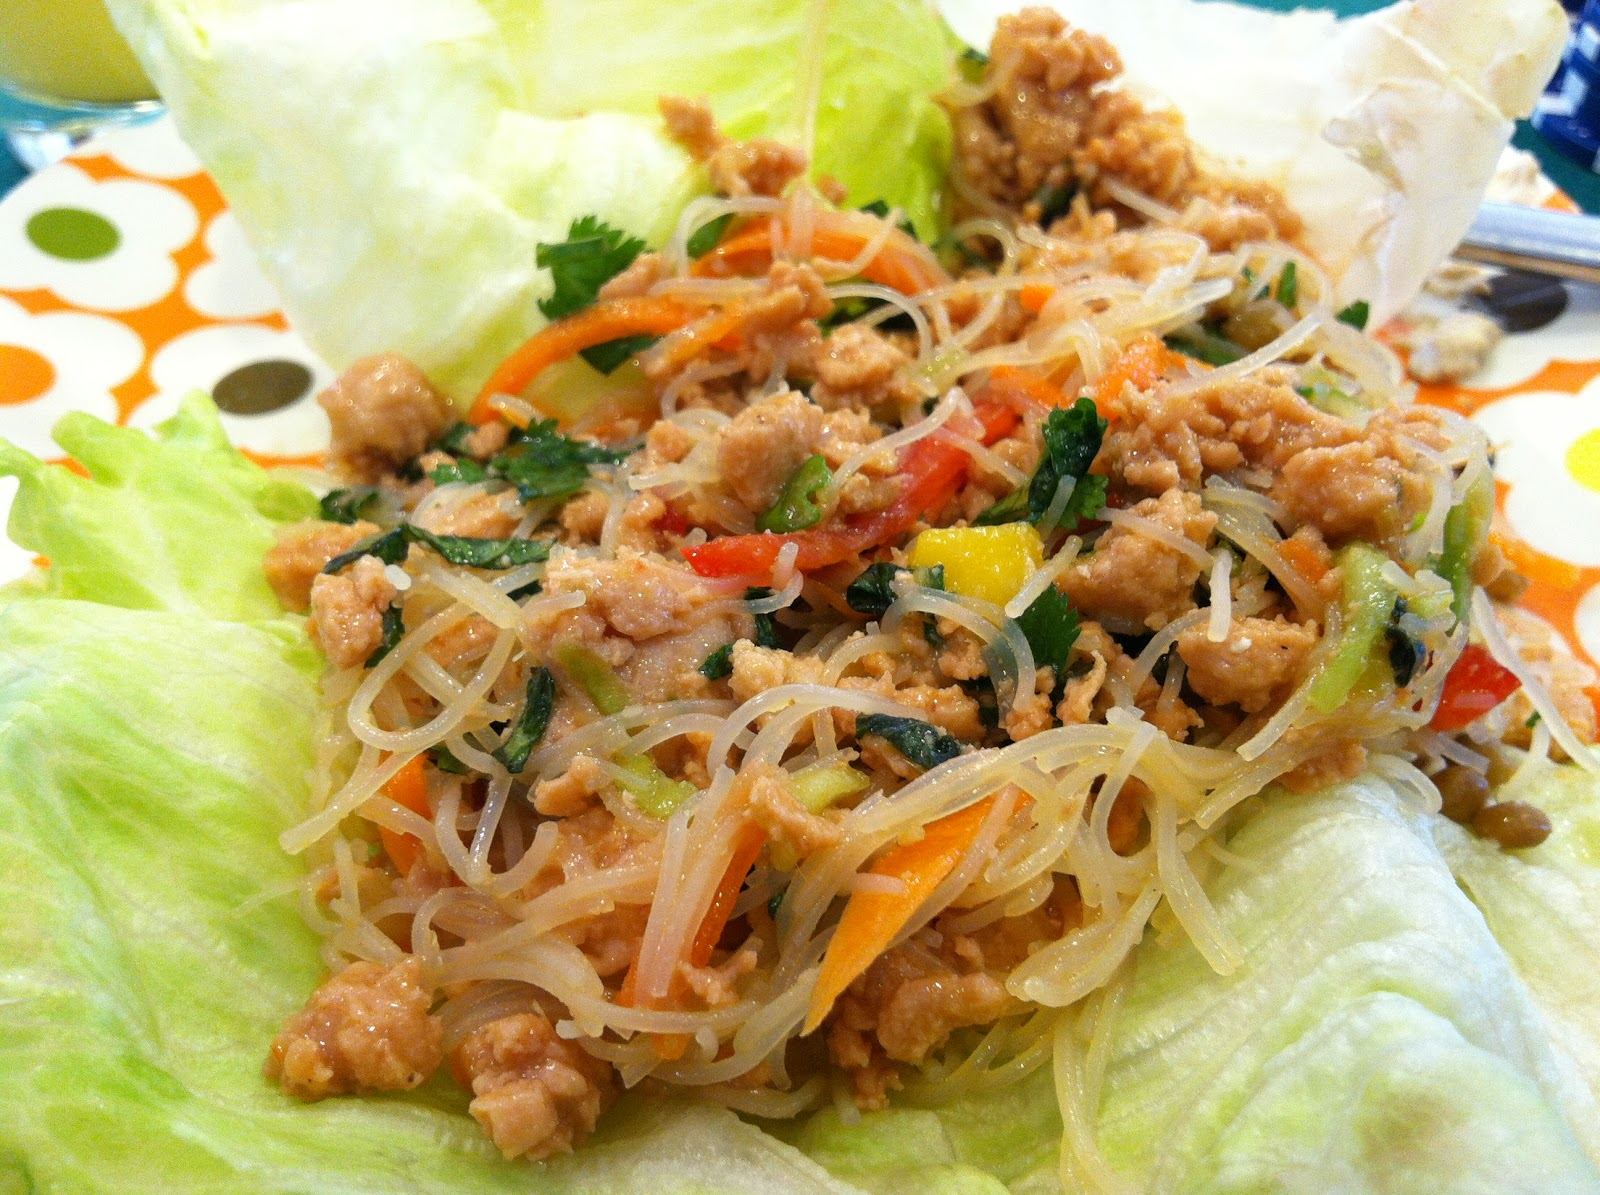 ... Nicole's Time to Eat! Blog: Thai lemongrass chicken in lettuce cups